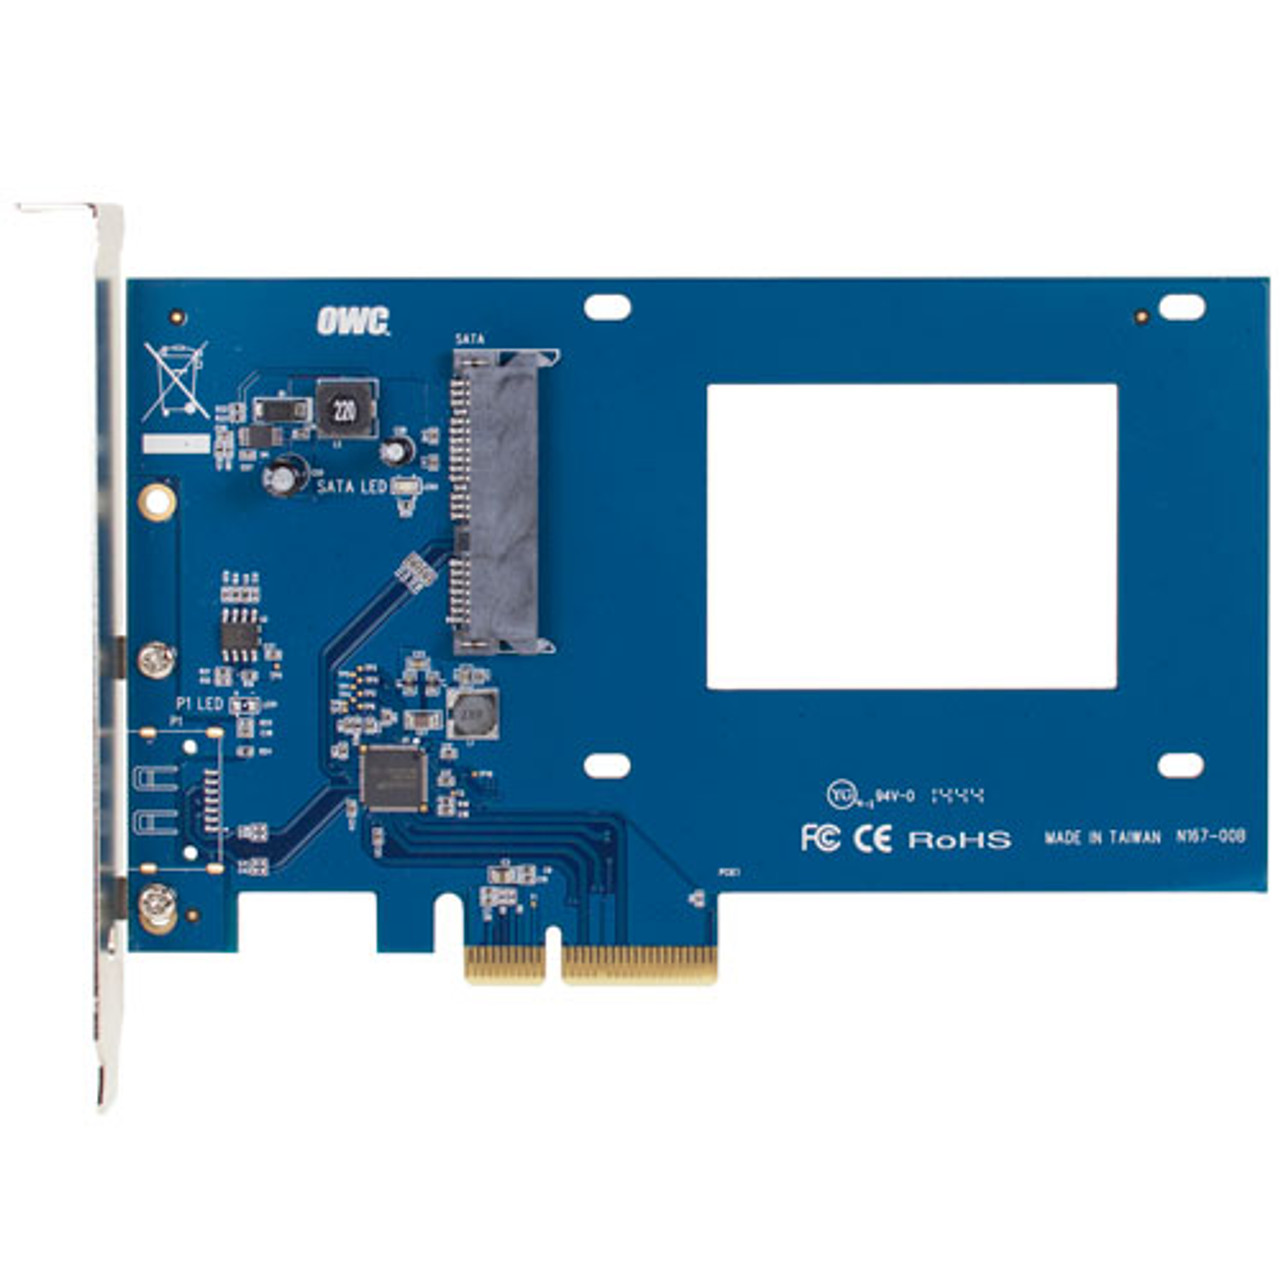 250GB OWC 6G SSD and OWC Accelsior S PCIe to 2.5-inch adapter bundle